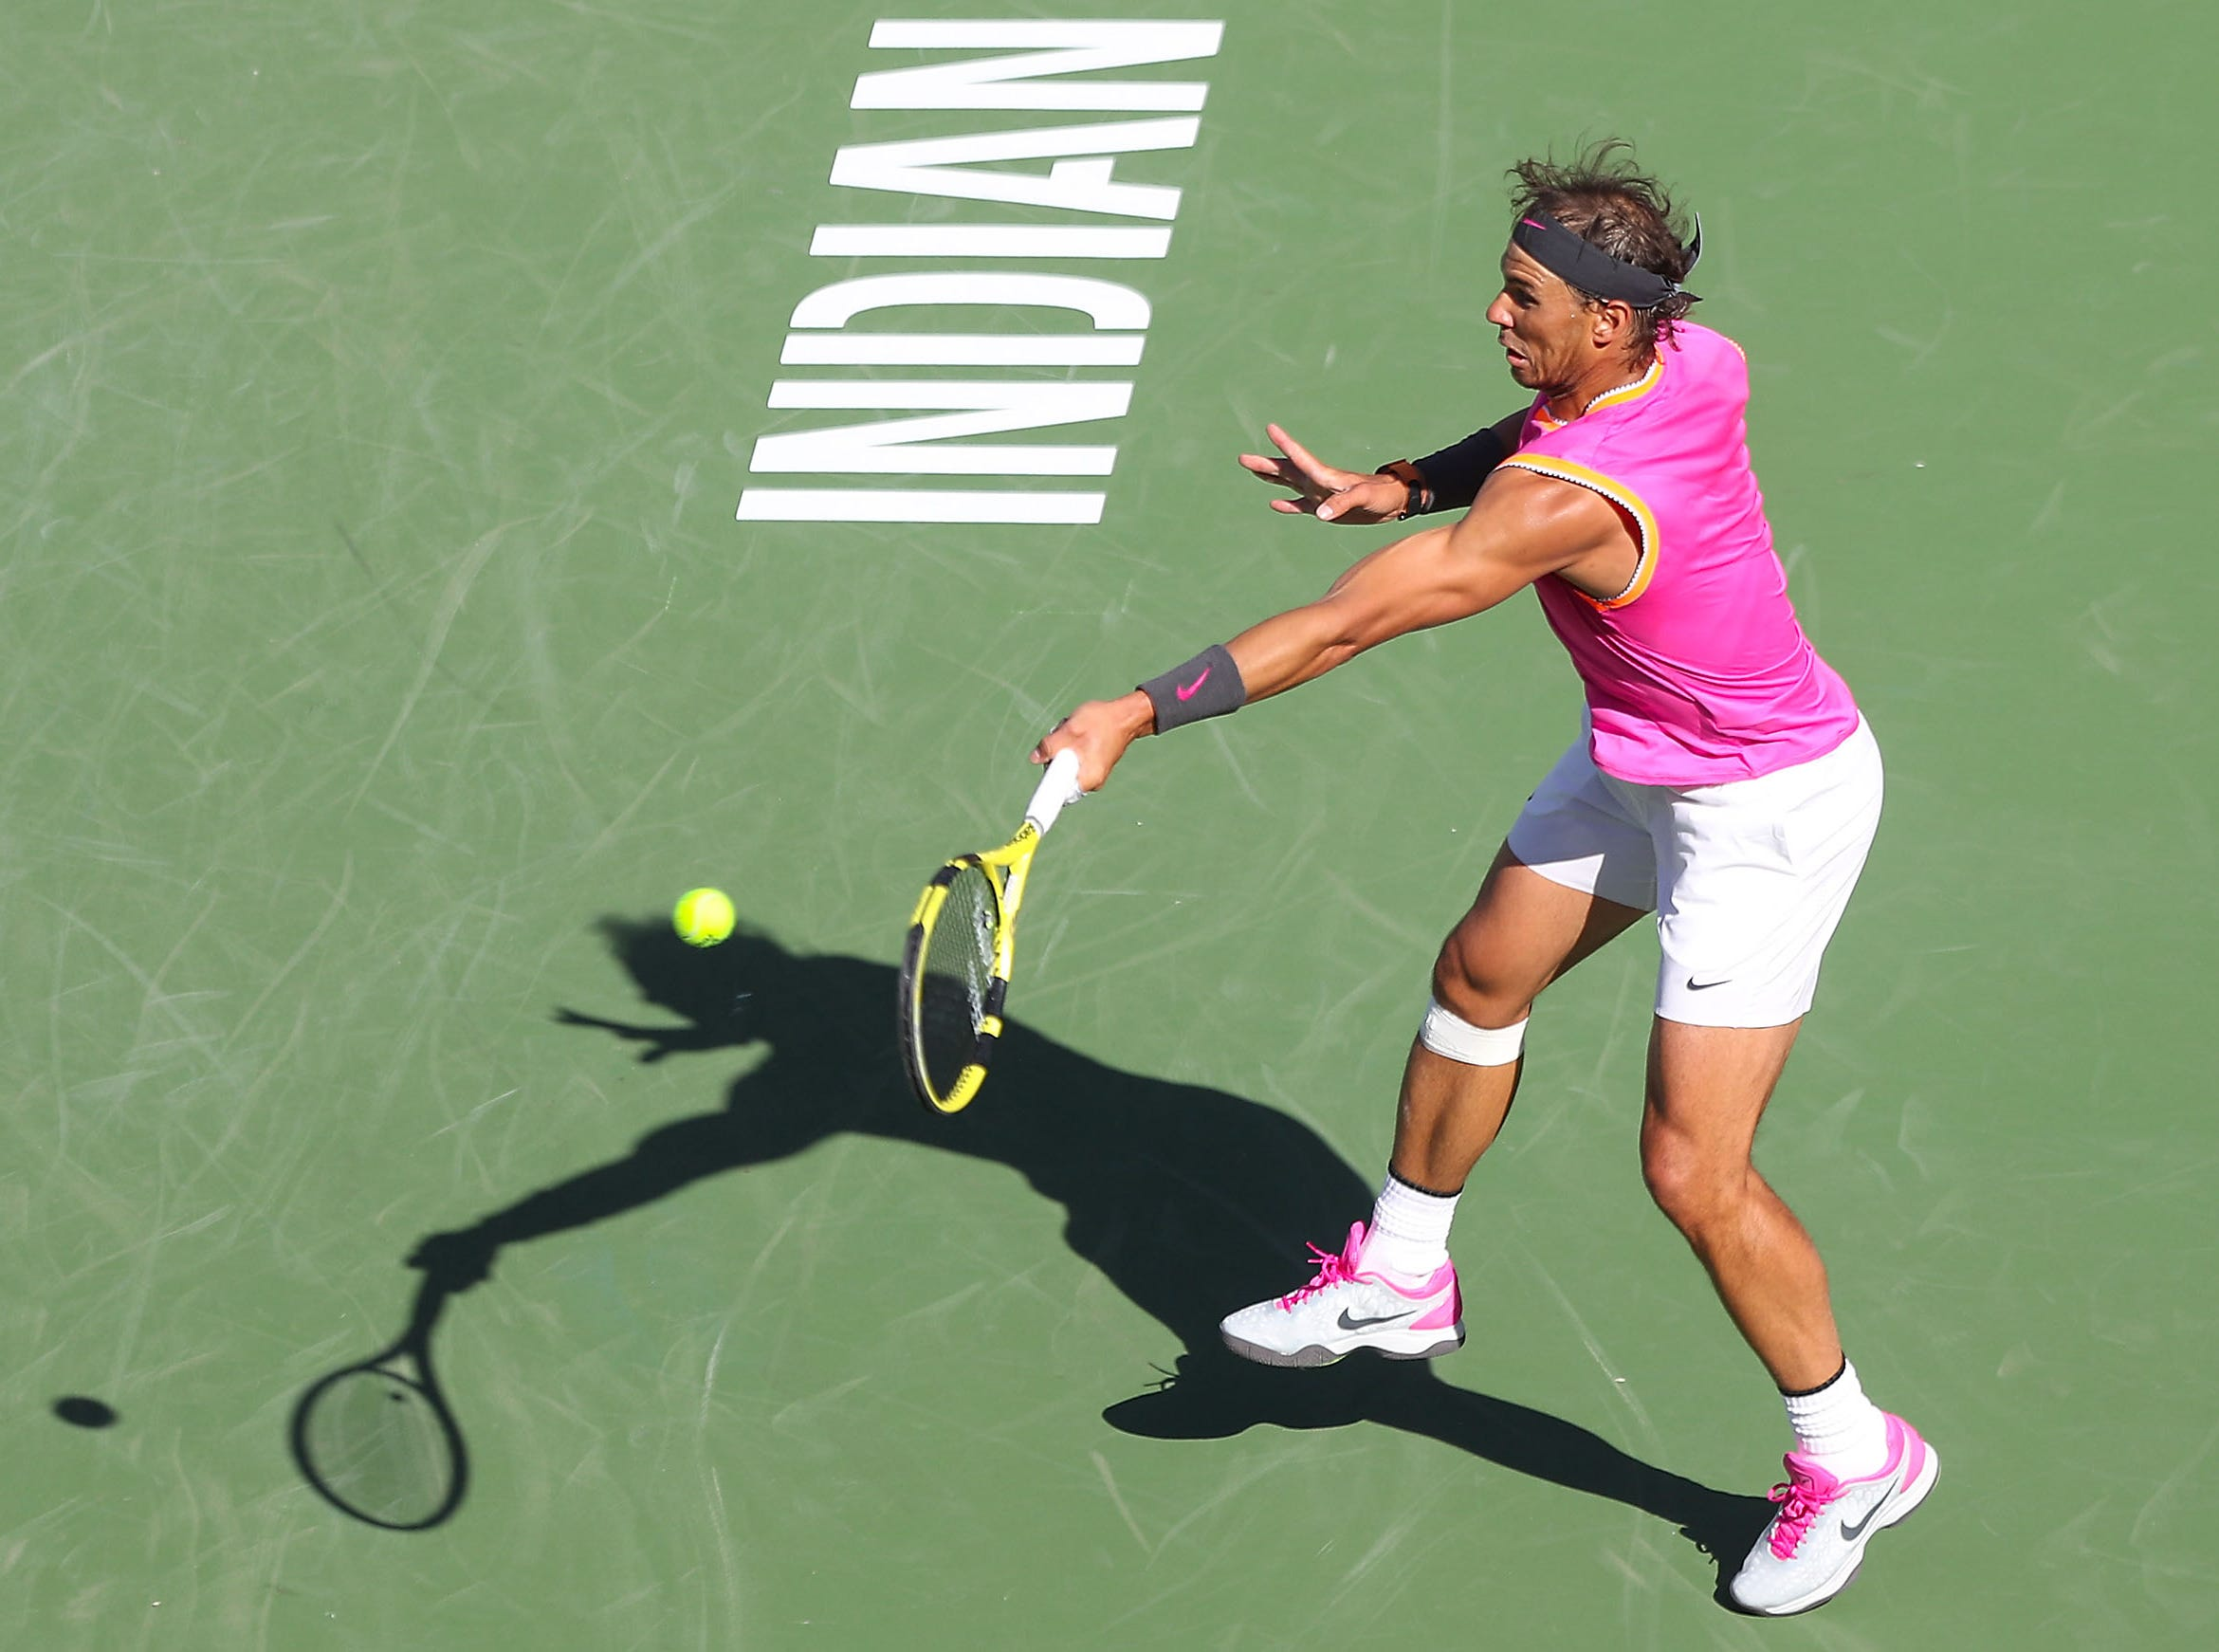 Rafael Nadal hits a forehand during his match against Karen Khachanov at the BNP Paribas Open in Indian Wells, March 15, 2019.